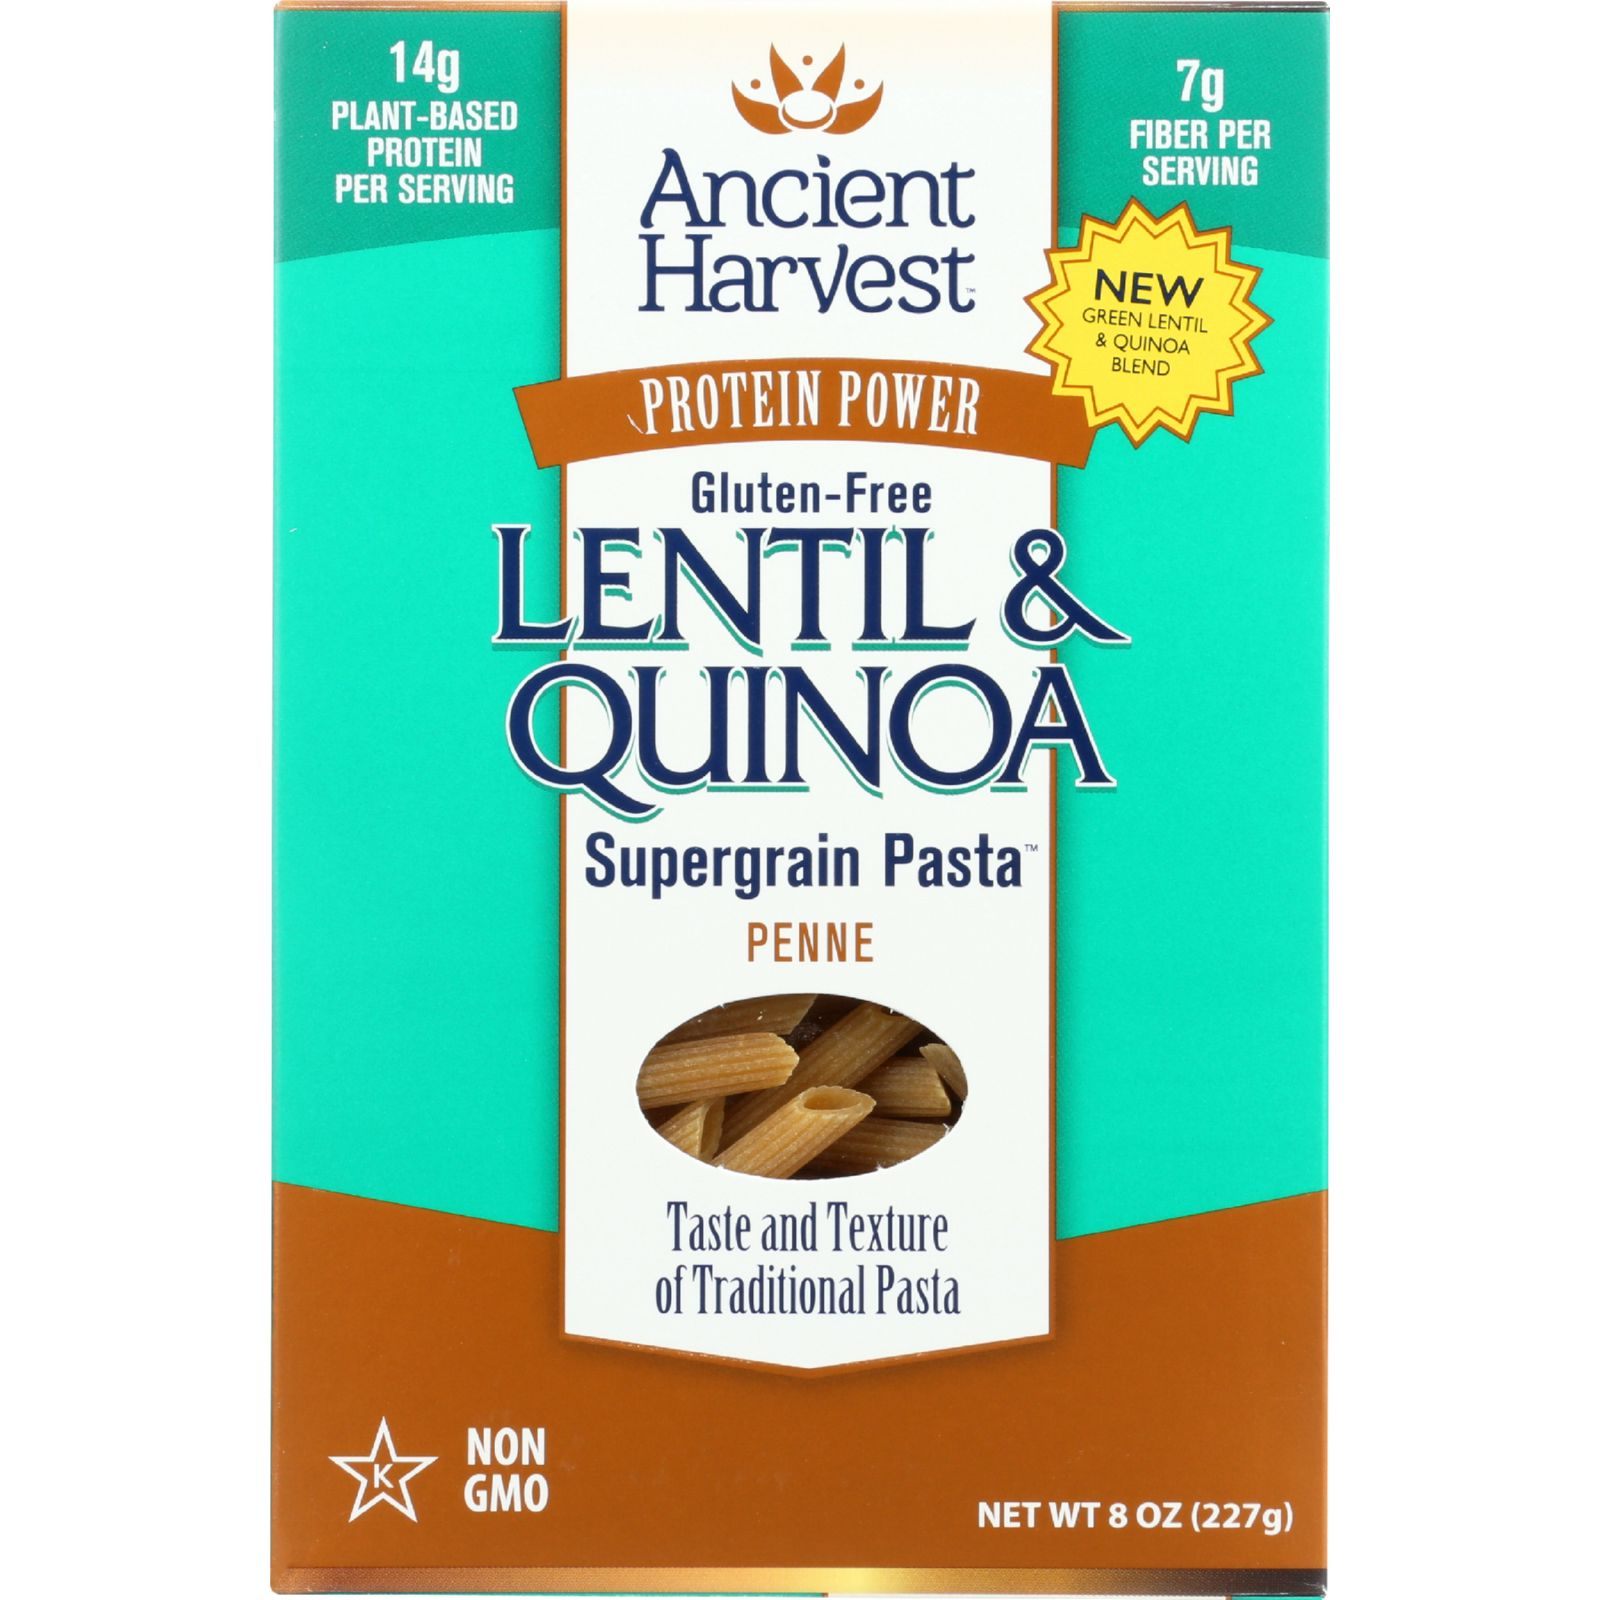 Ancient Harvest Pasta - Supergrain - Green Lentil and Quinoa Penne - Gluten Free - 8 oz - case of 6